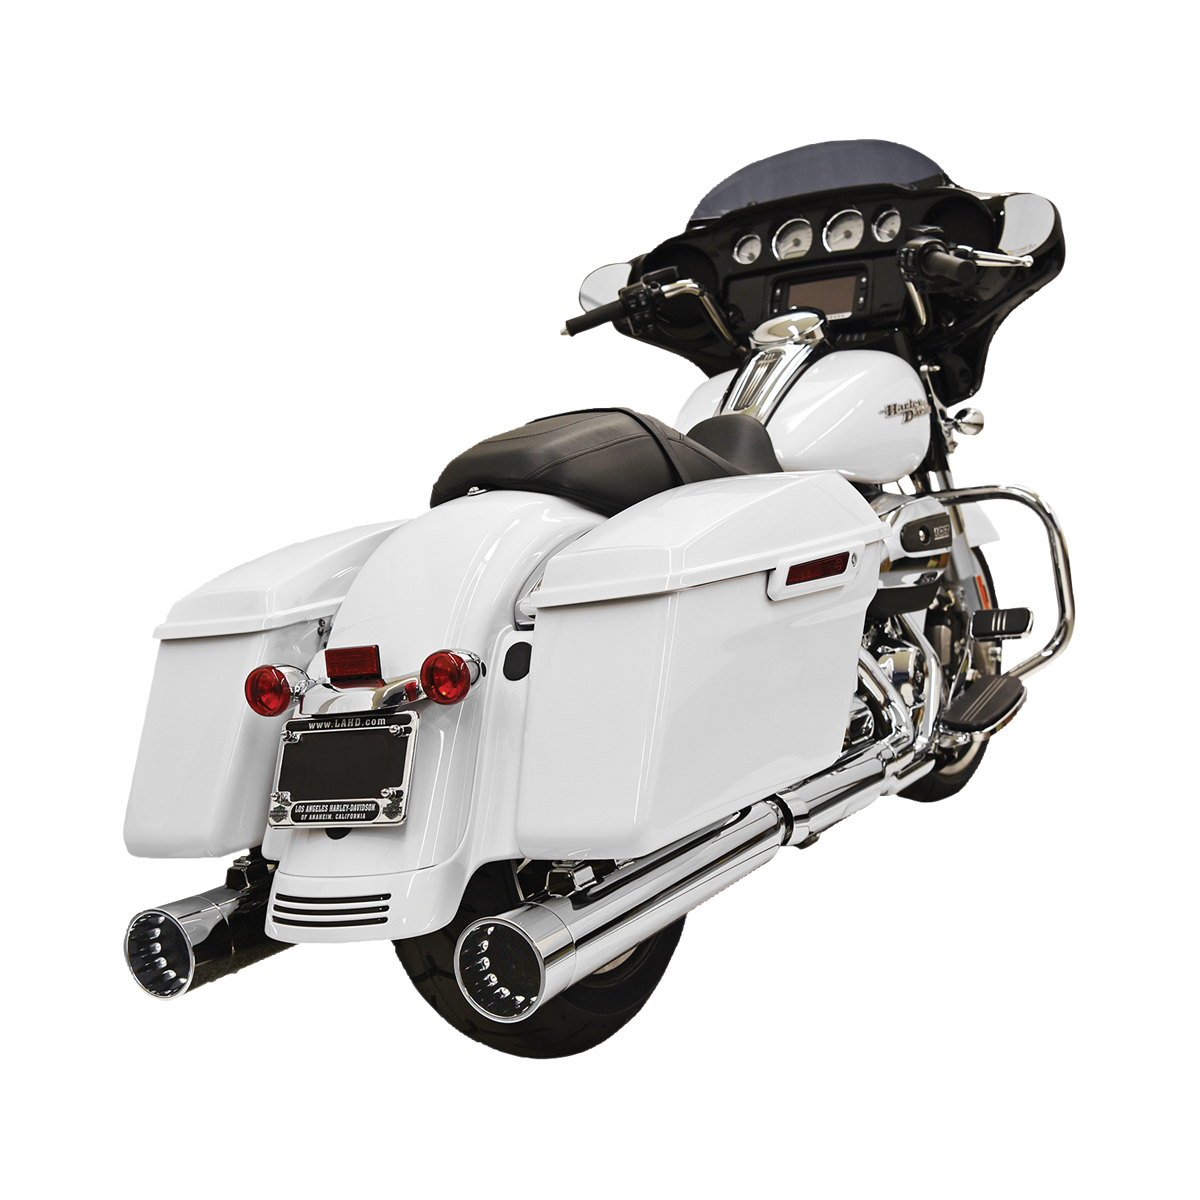 Bassani 4″ Straight Can DNT Slip On Mufflers Chrome with Chrome End Cap